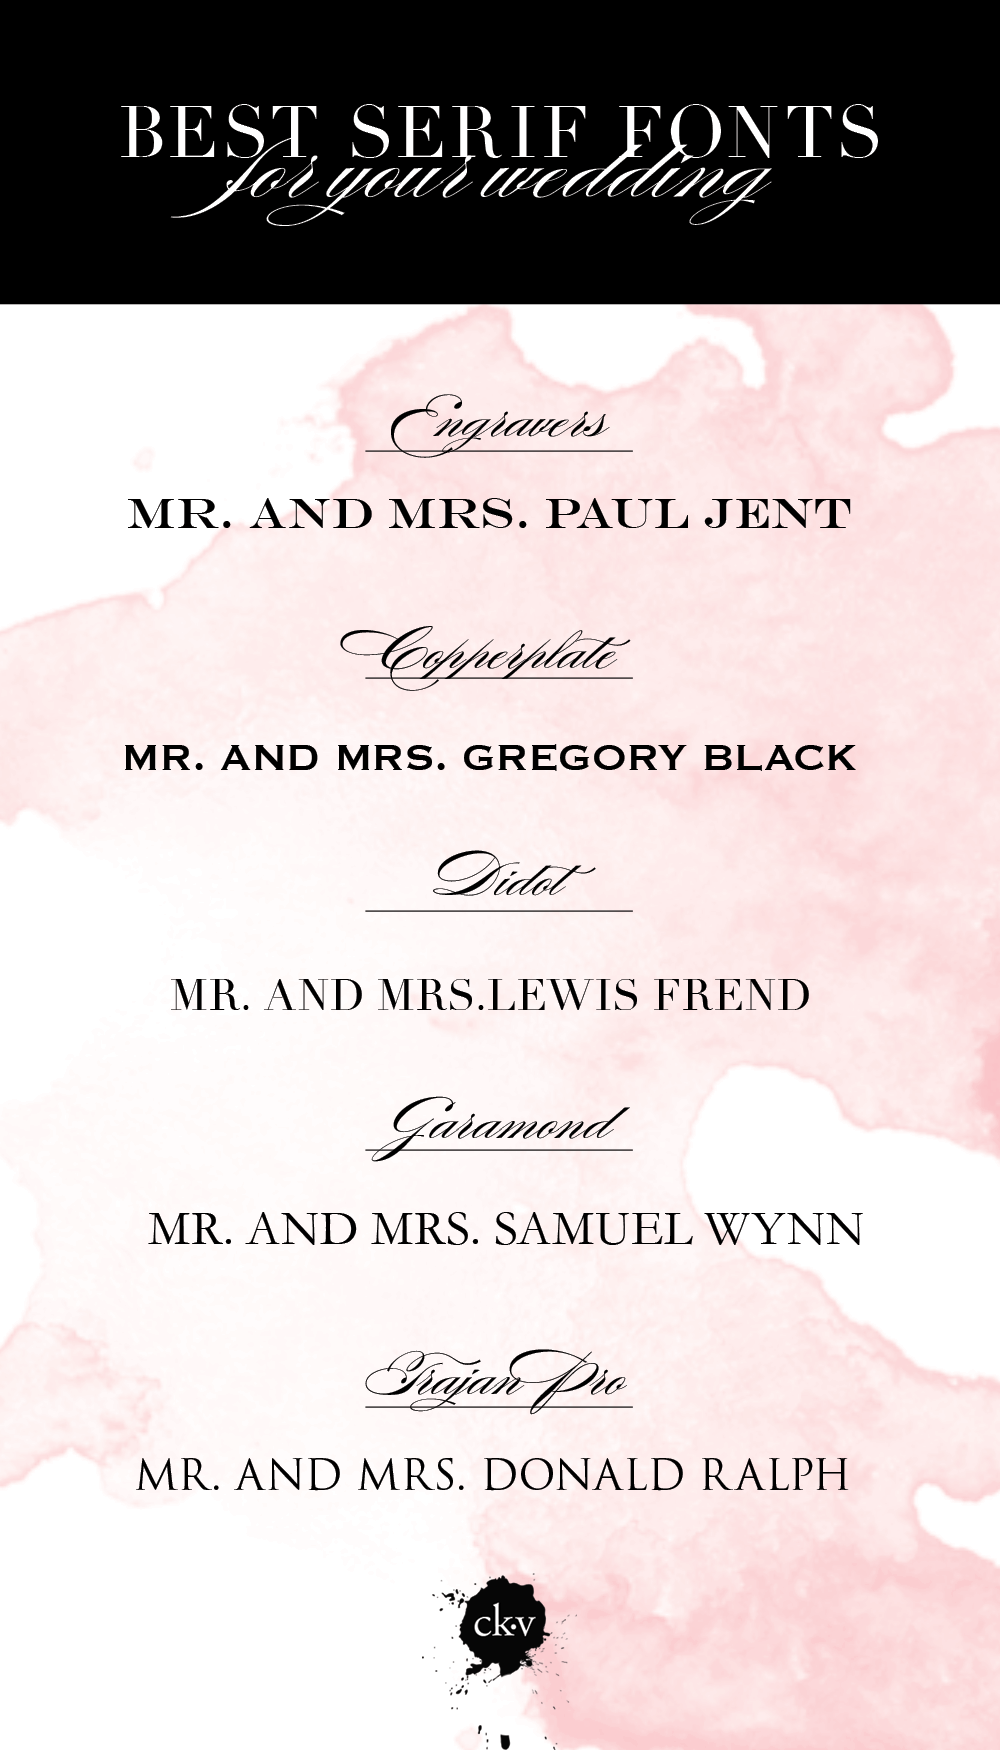 FONT FRIDAY THE ABSOLUTE BEST SERIF FONTS FOR YOUR WEDDING